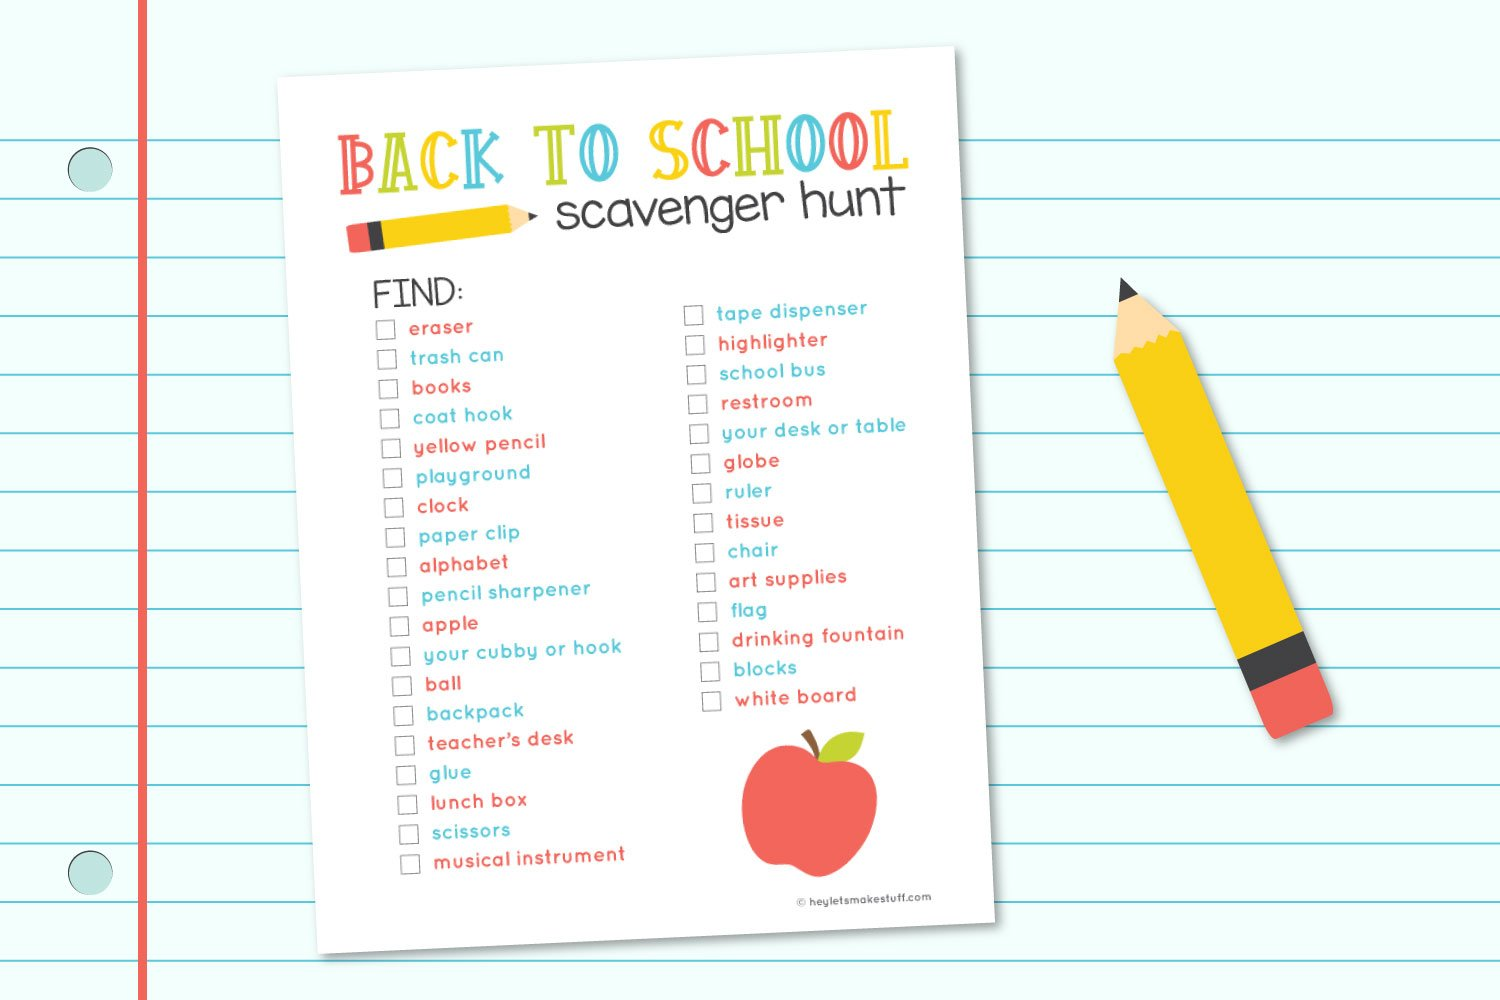 Back to school scavenger hunt on a fake paper background.